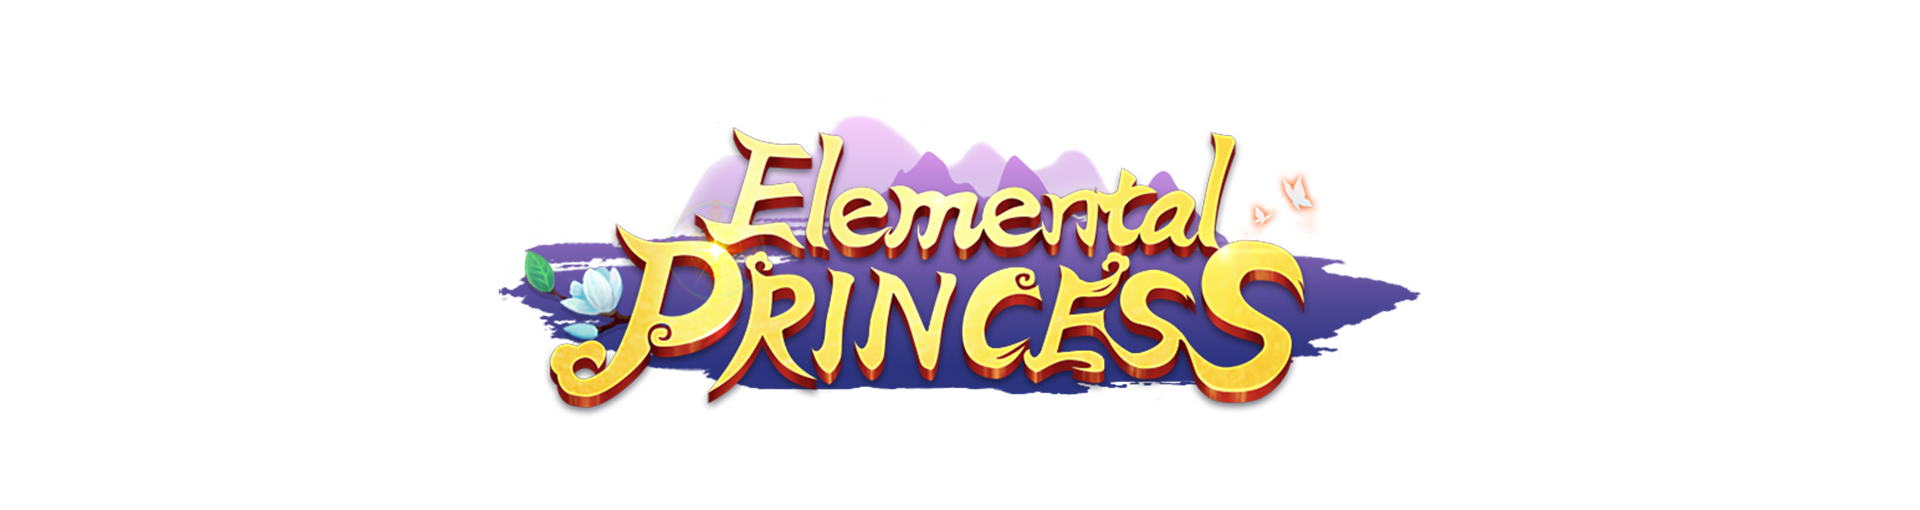 Yggdrasil-upcoming-game-LOGO-Elemental